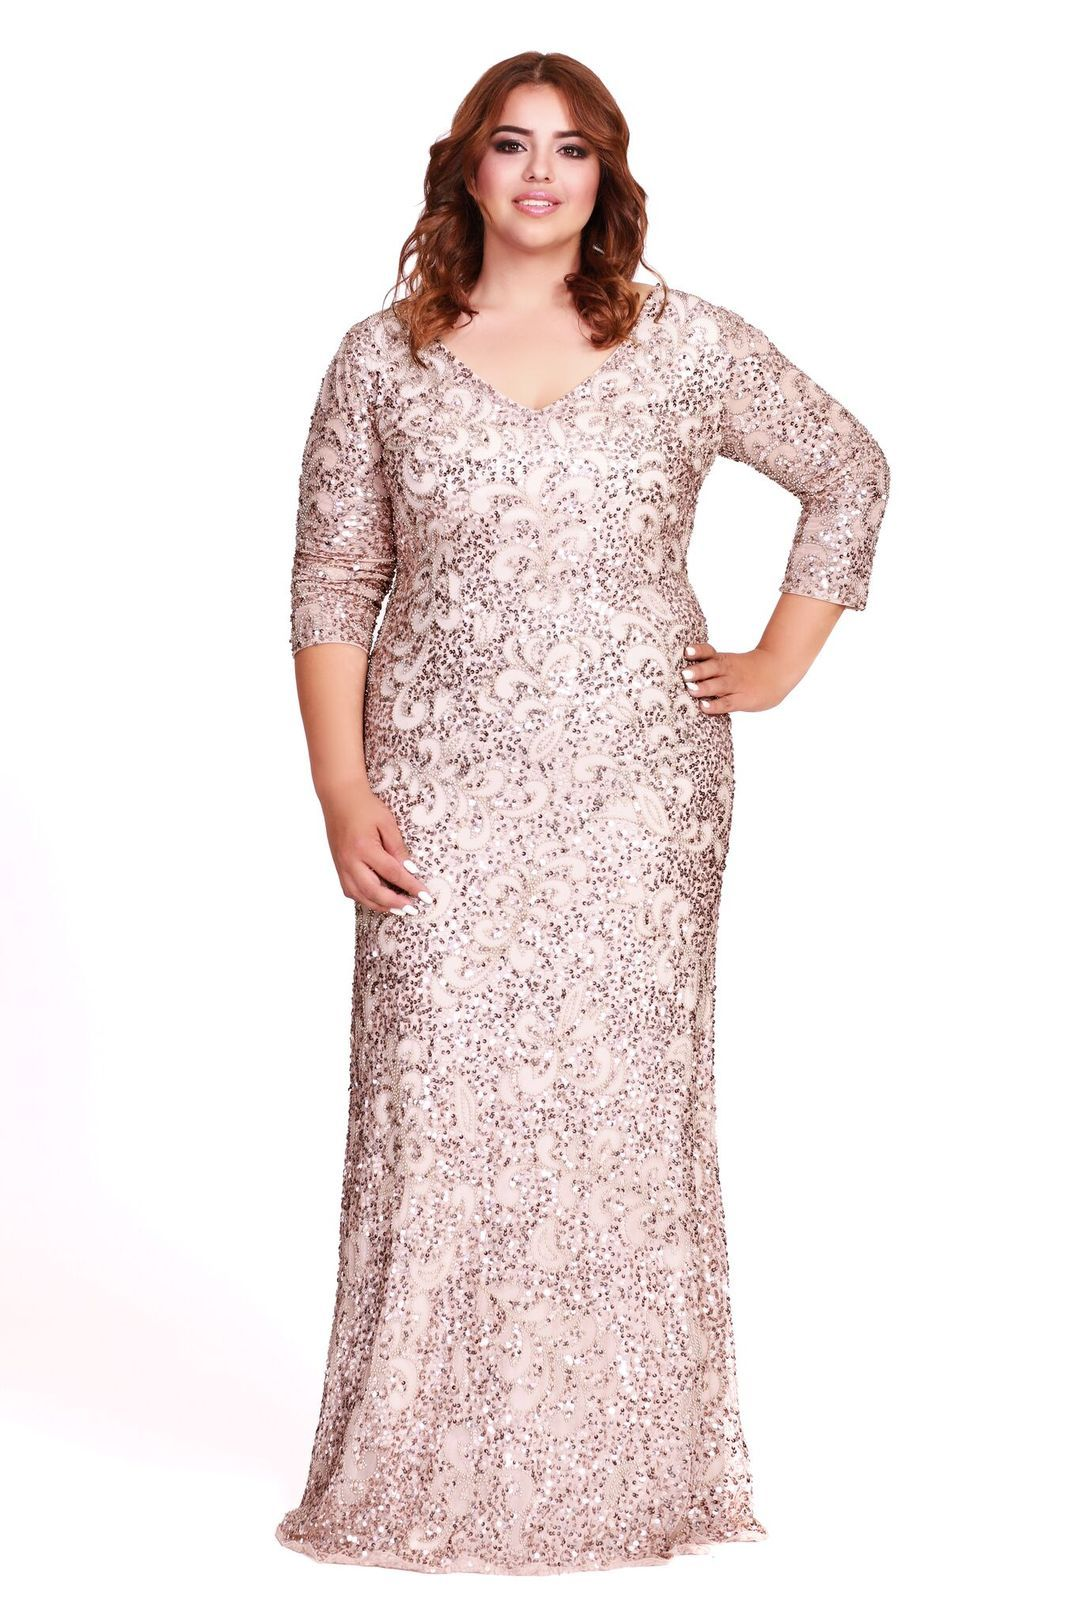 Long Sleeve Embellished Bridesmaid Mother Of The Bride Plus Size Dress Rose G Gold Plus Size Dresses Bridesmaid Dresses Plus Size Mother Of The Bride Plus Size